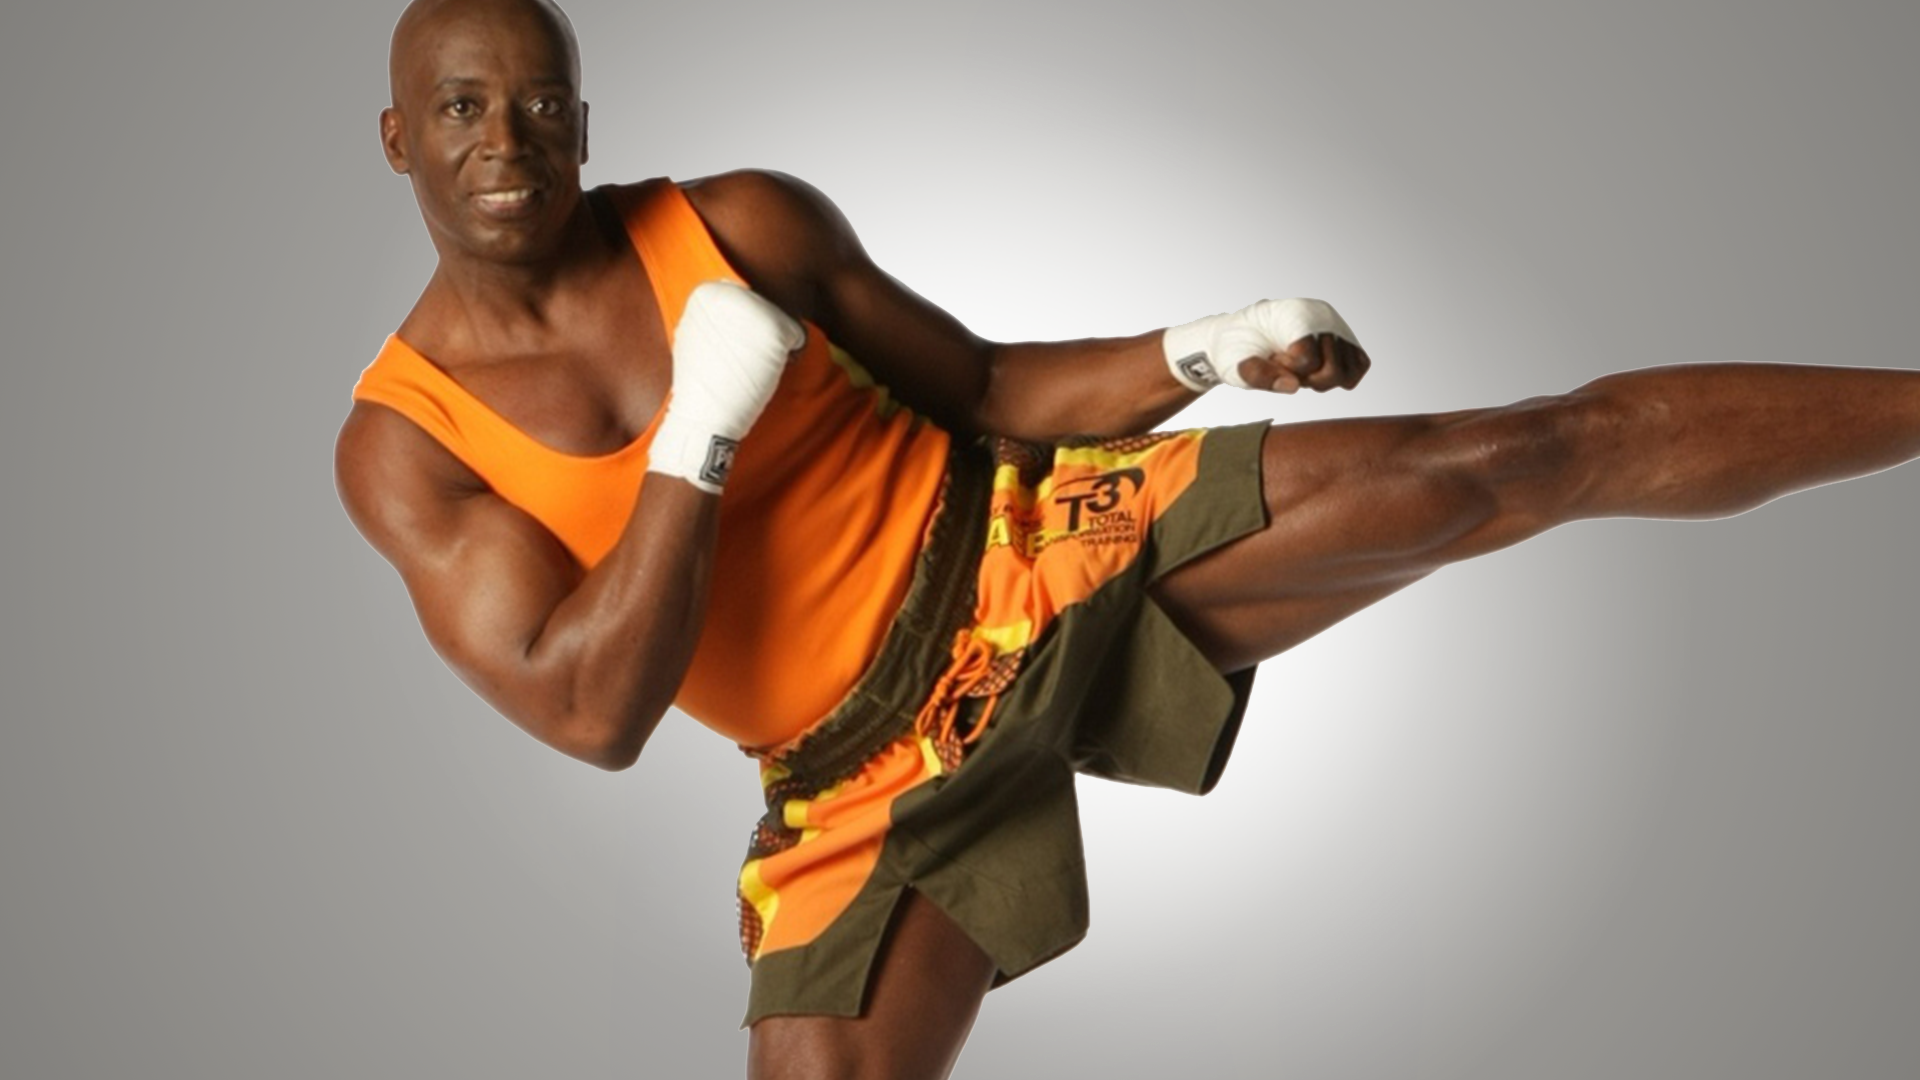 Billy Blanks - FitFusion